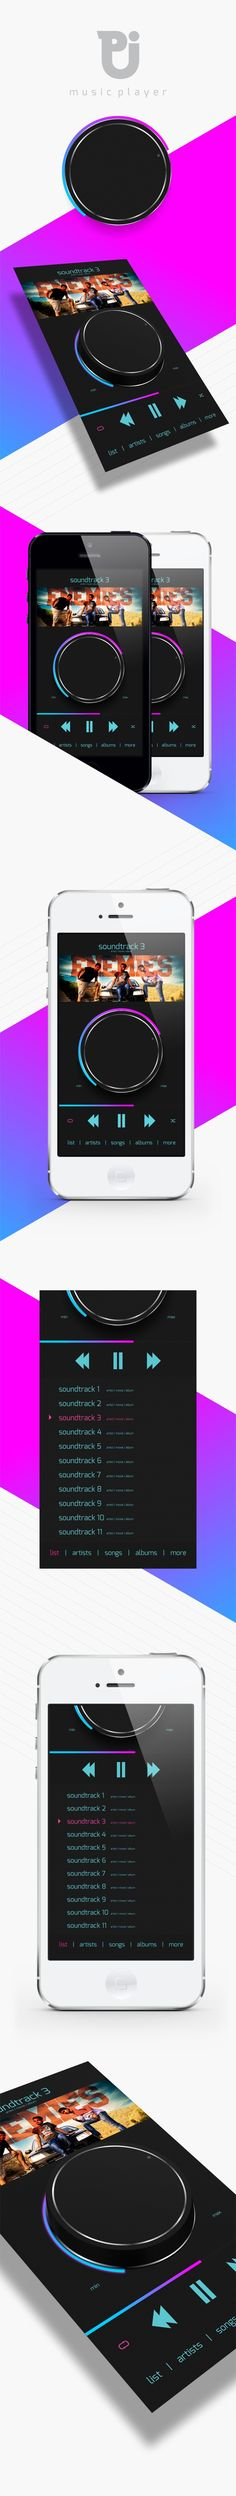 New Music Player Design User Interface Mobile Ui Ideas Web Design, Logo Design, Gui Interface, User Interface Design, Musik Player, Music Web, Mobile Ui Design, User Experience Design, Interactive Design